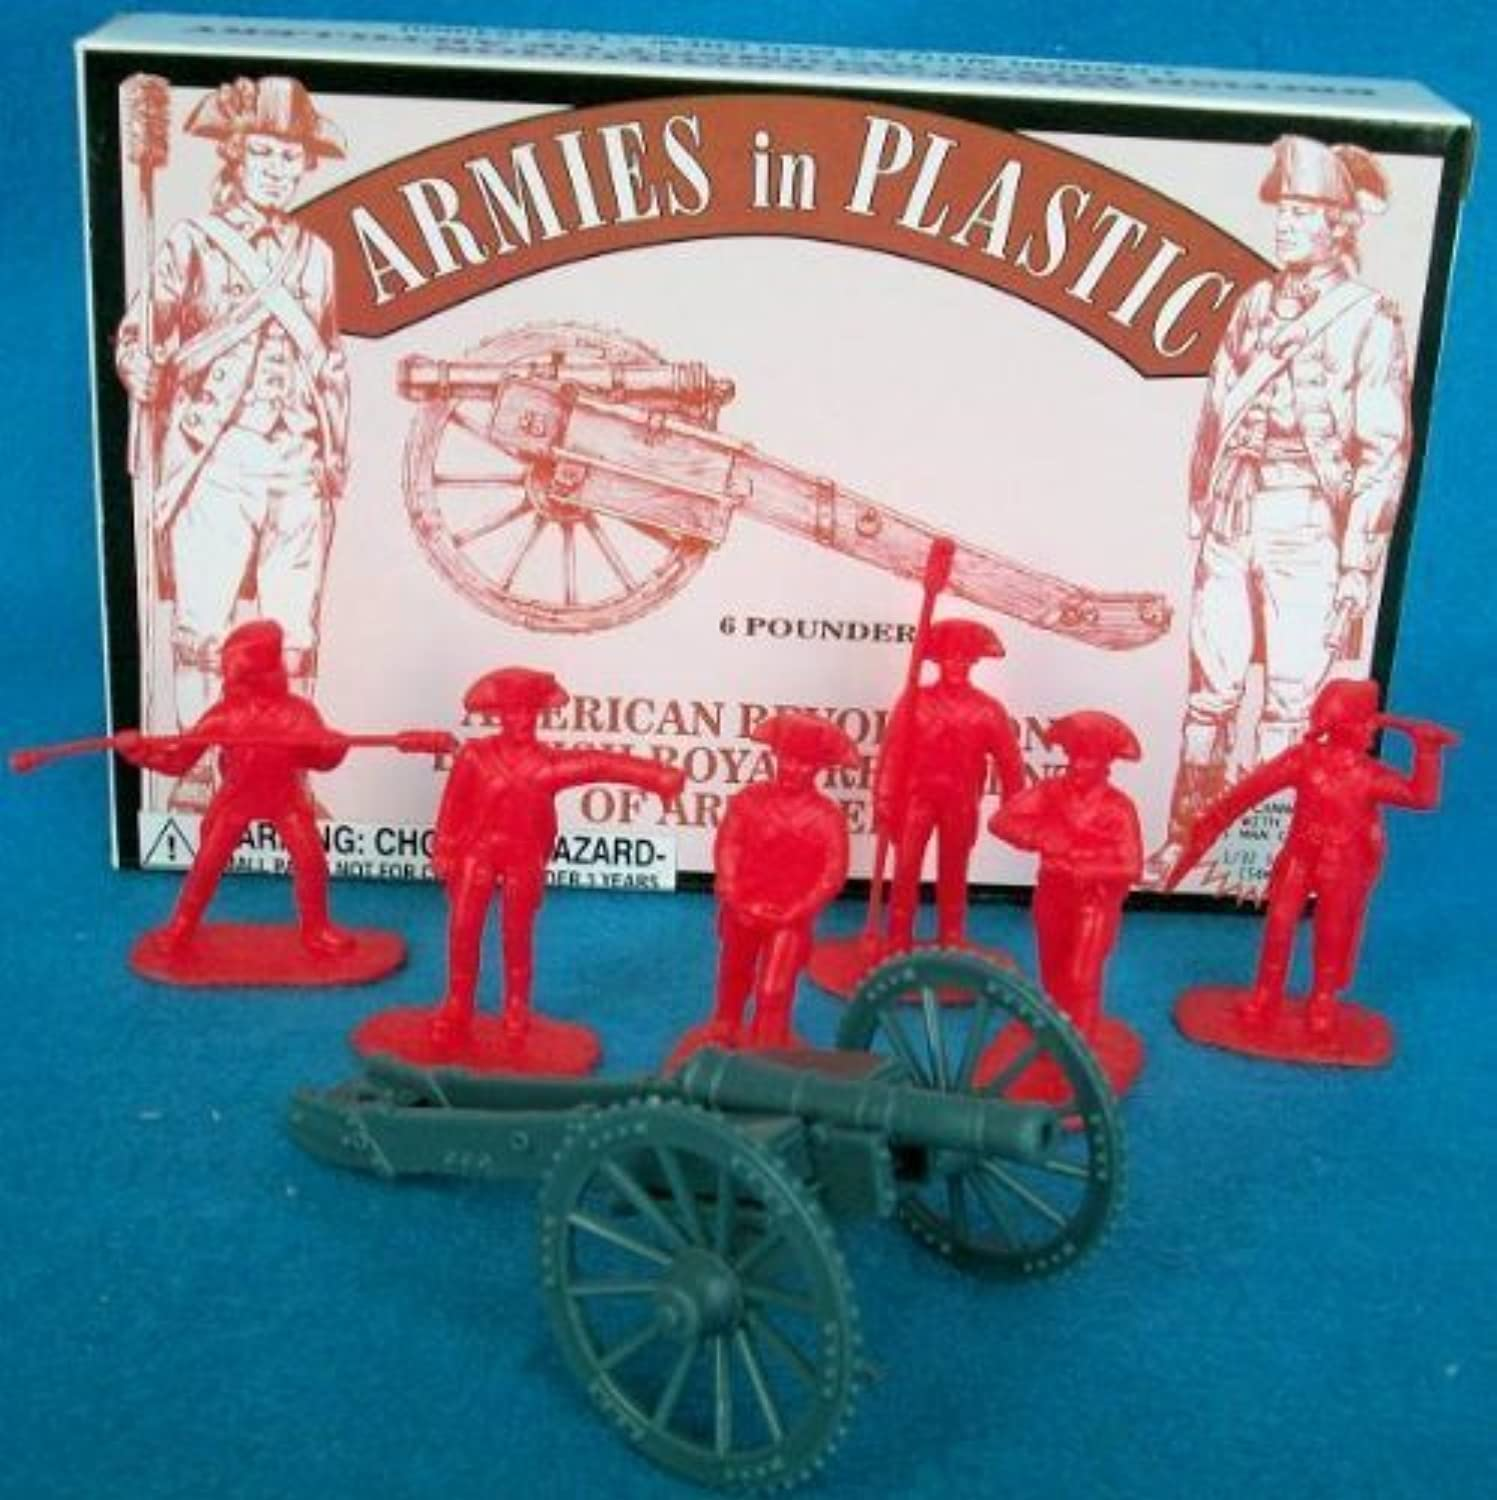 American Revolution British Royal Regiment of Artillery Crew (5) w Cannon 1 32 Armies in Plastic by Armies in Plastic